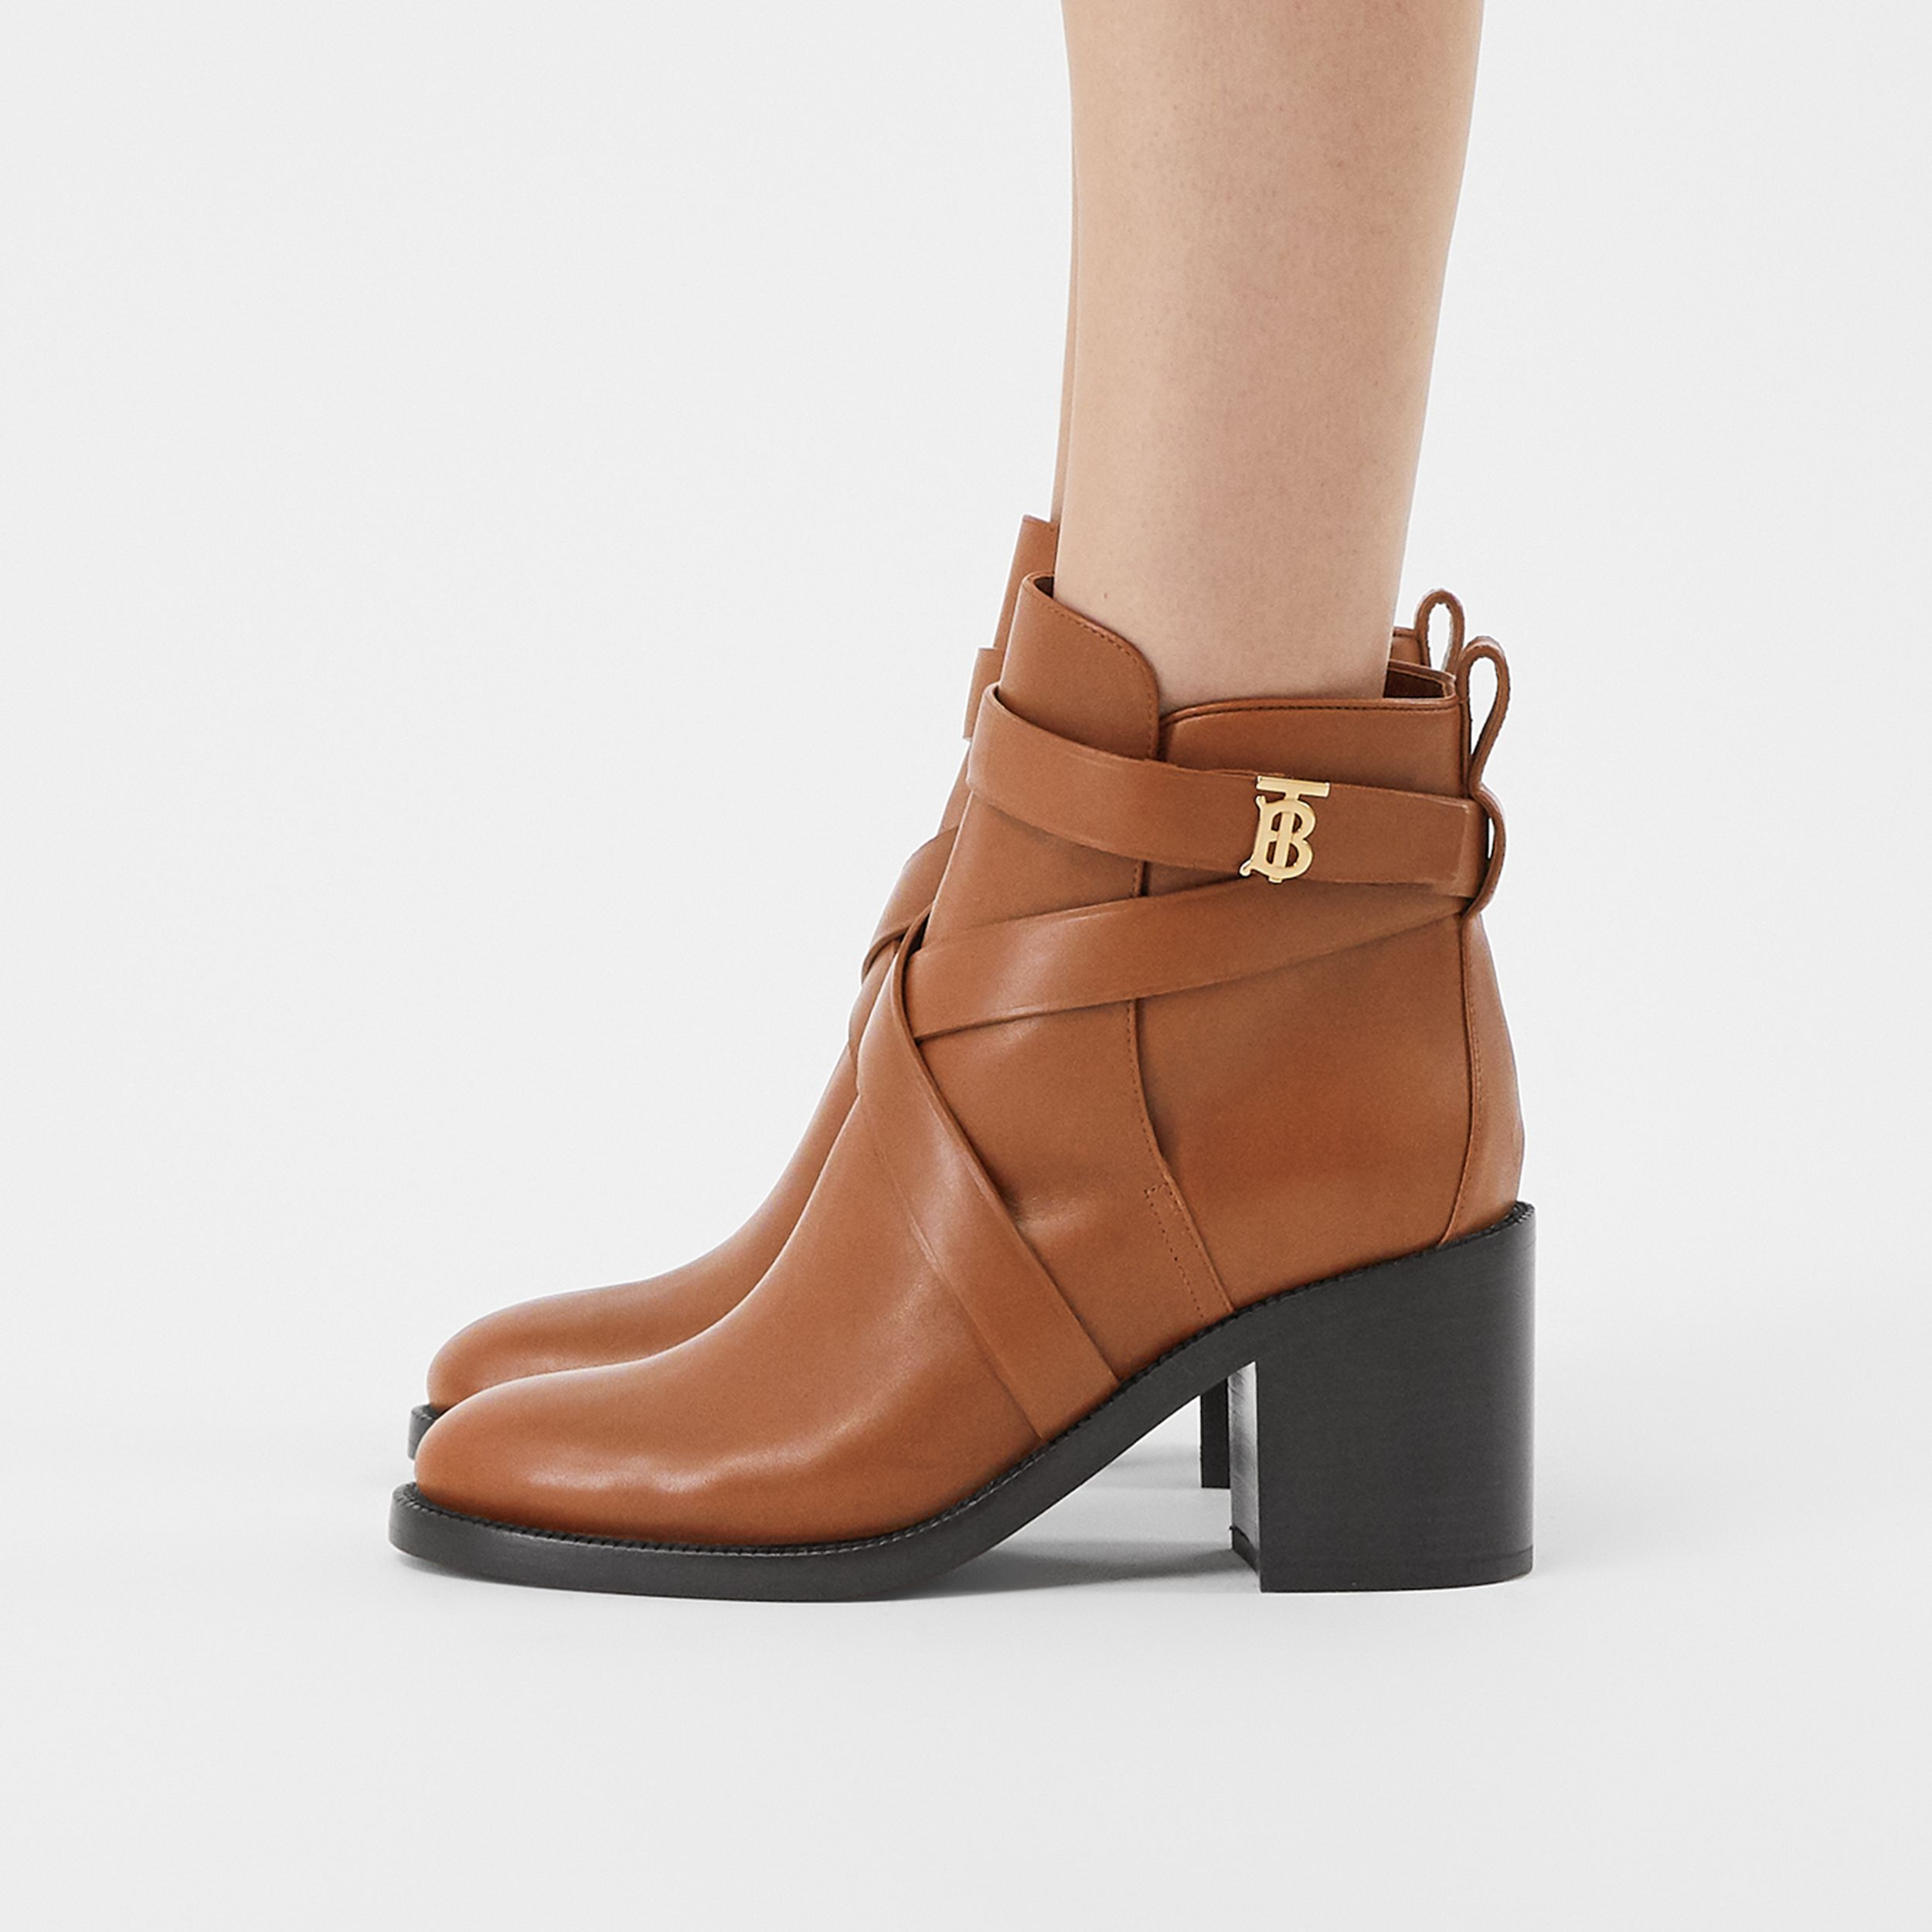 Monogram Motif Leather Ankle Boots in Tan - Women | Burberry - 3